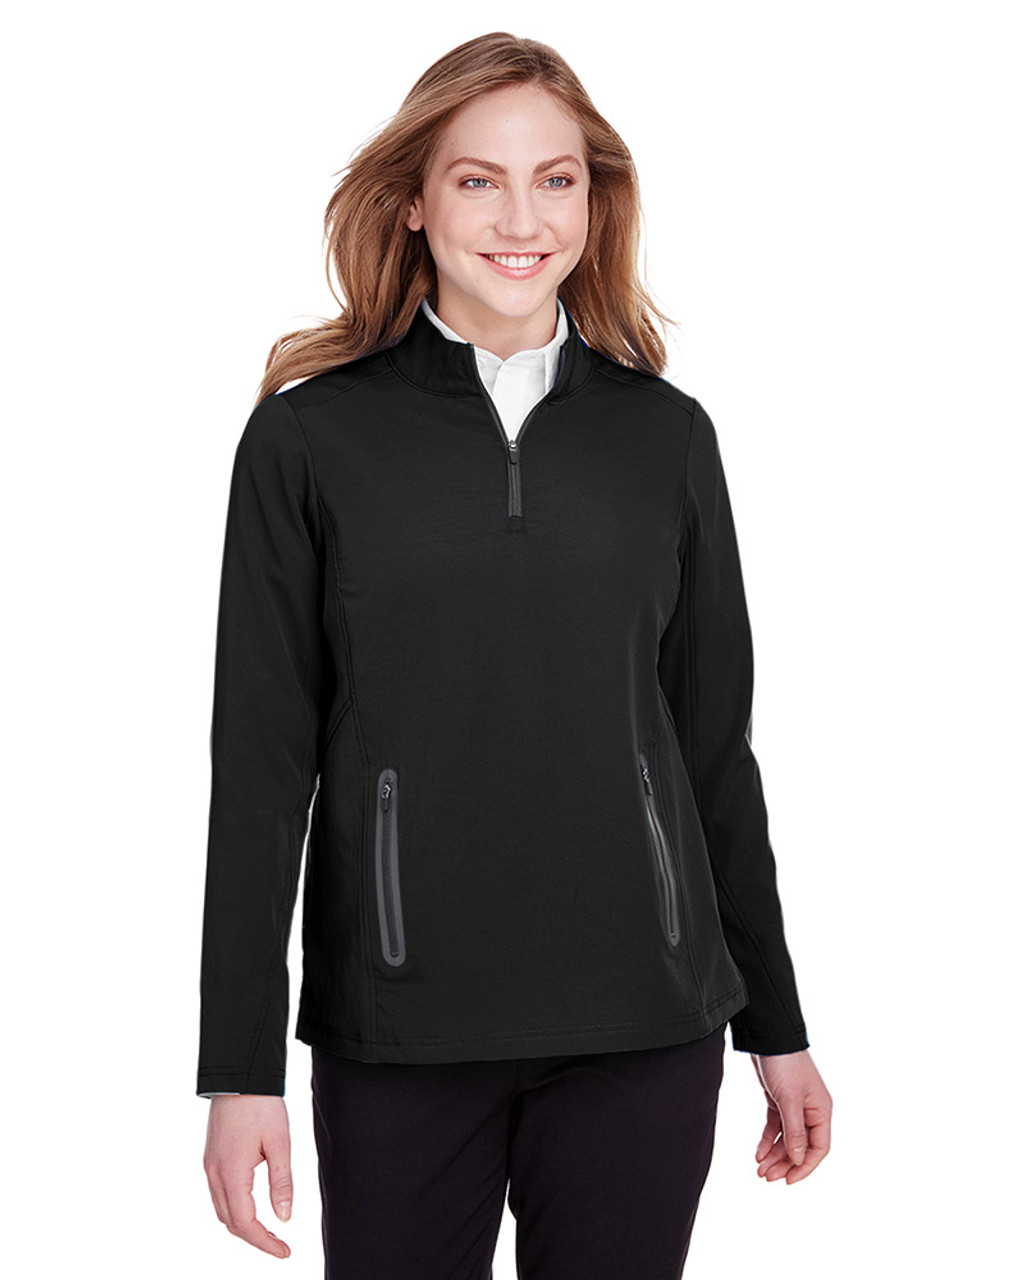 Black/Carbon - NE401W Ash City - North End Ladies' Quest Stretch Quarter-Zip Sweatshirt | Blankclothing.ca